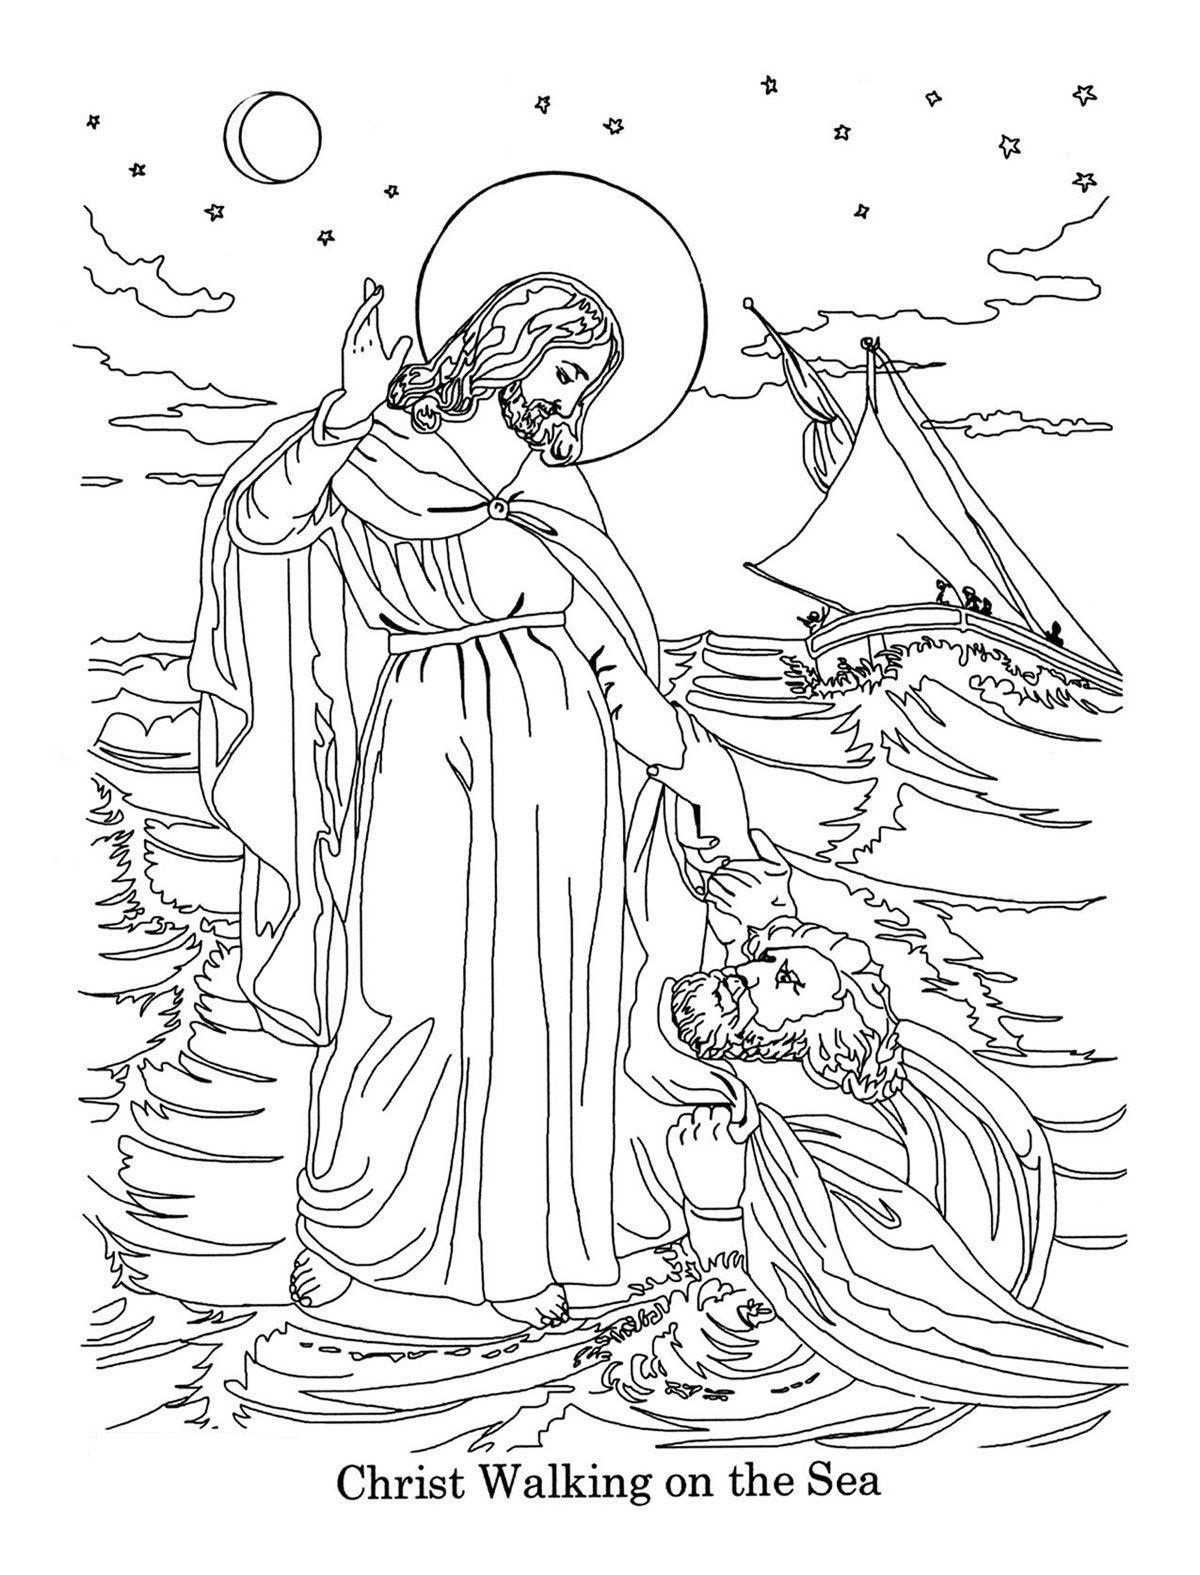 coloring pages for bible stories bible stories coloring pages educational fun kids for bible stories coloring pages